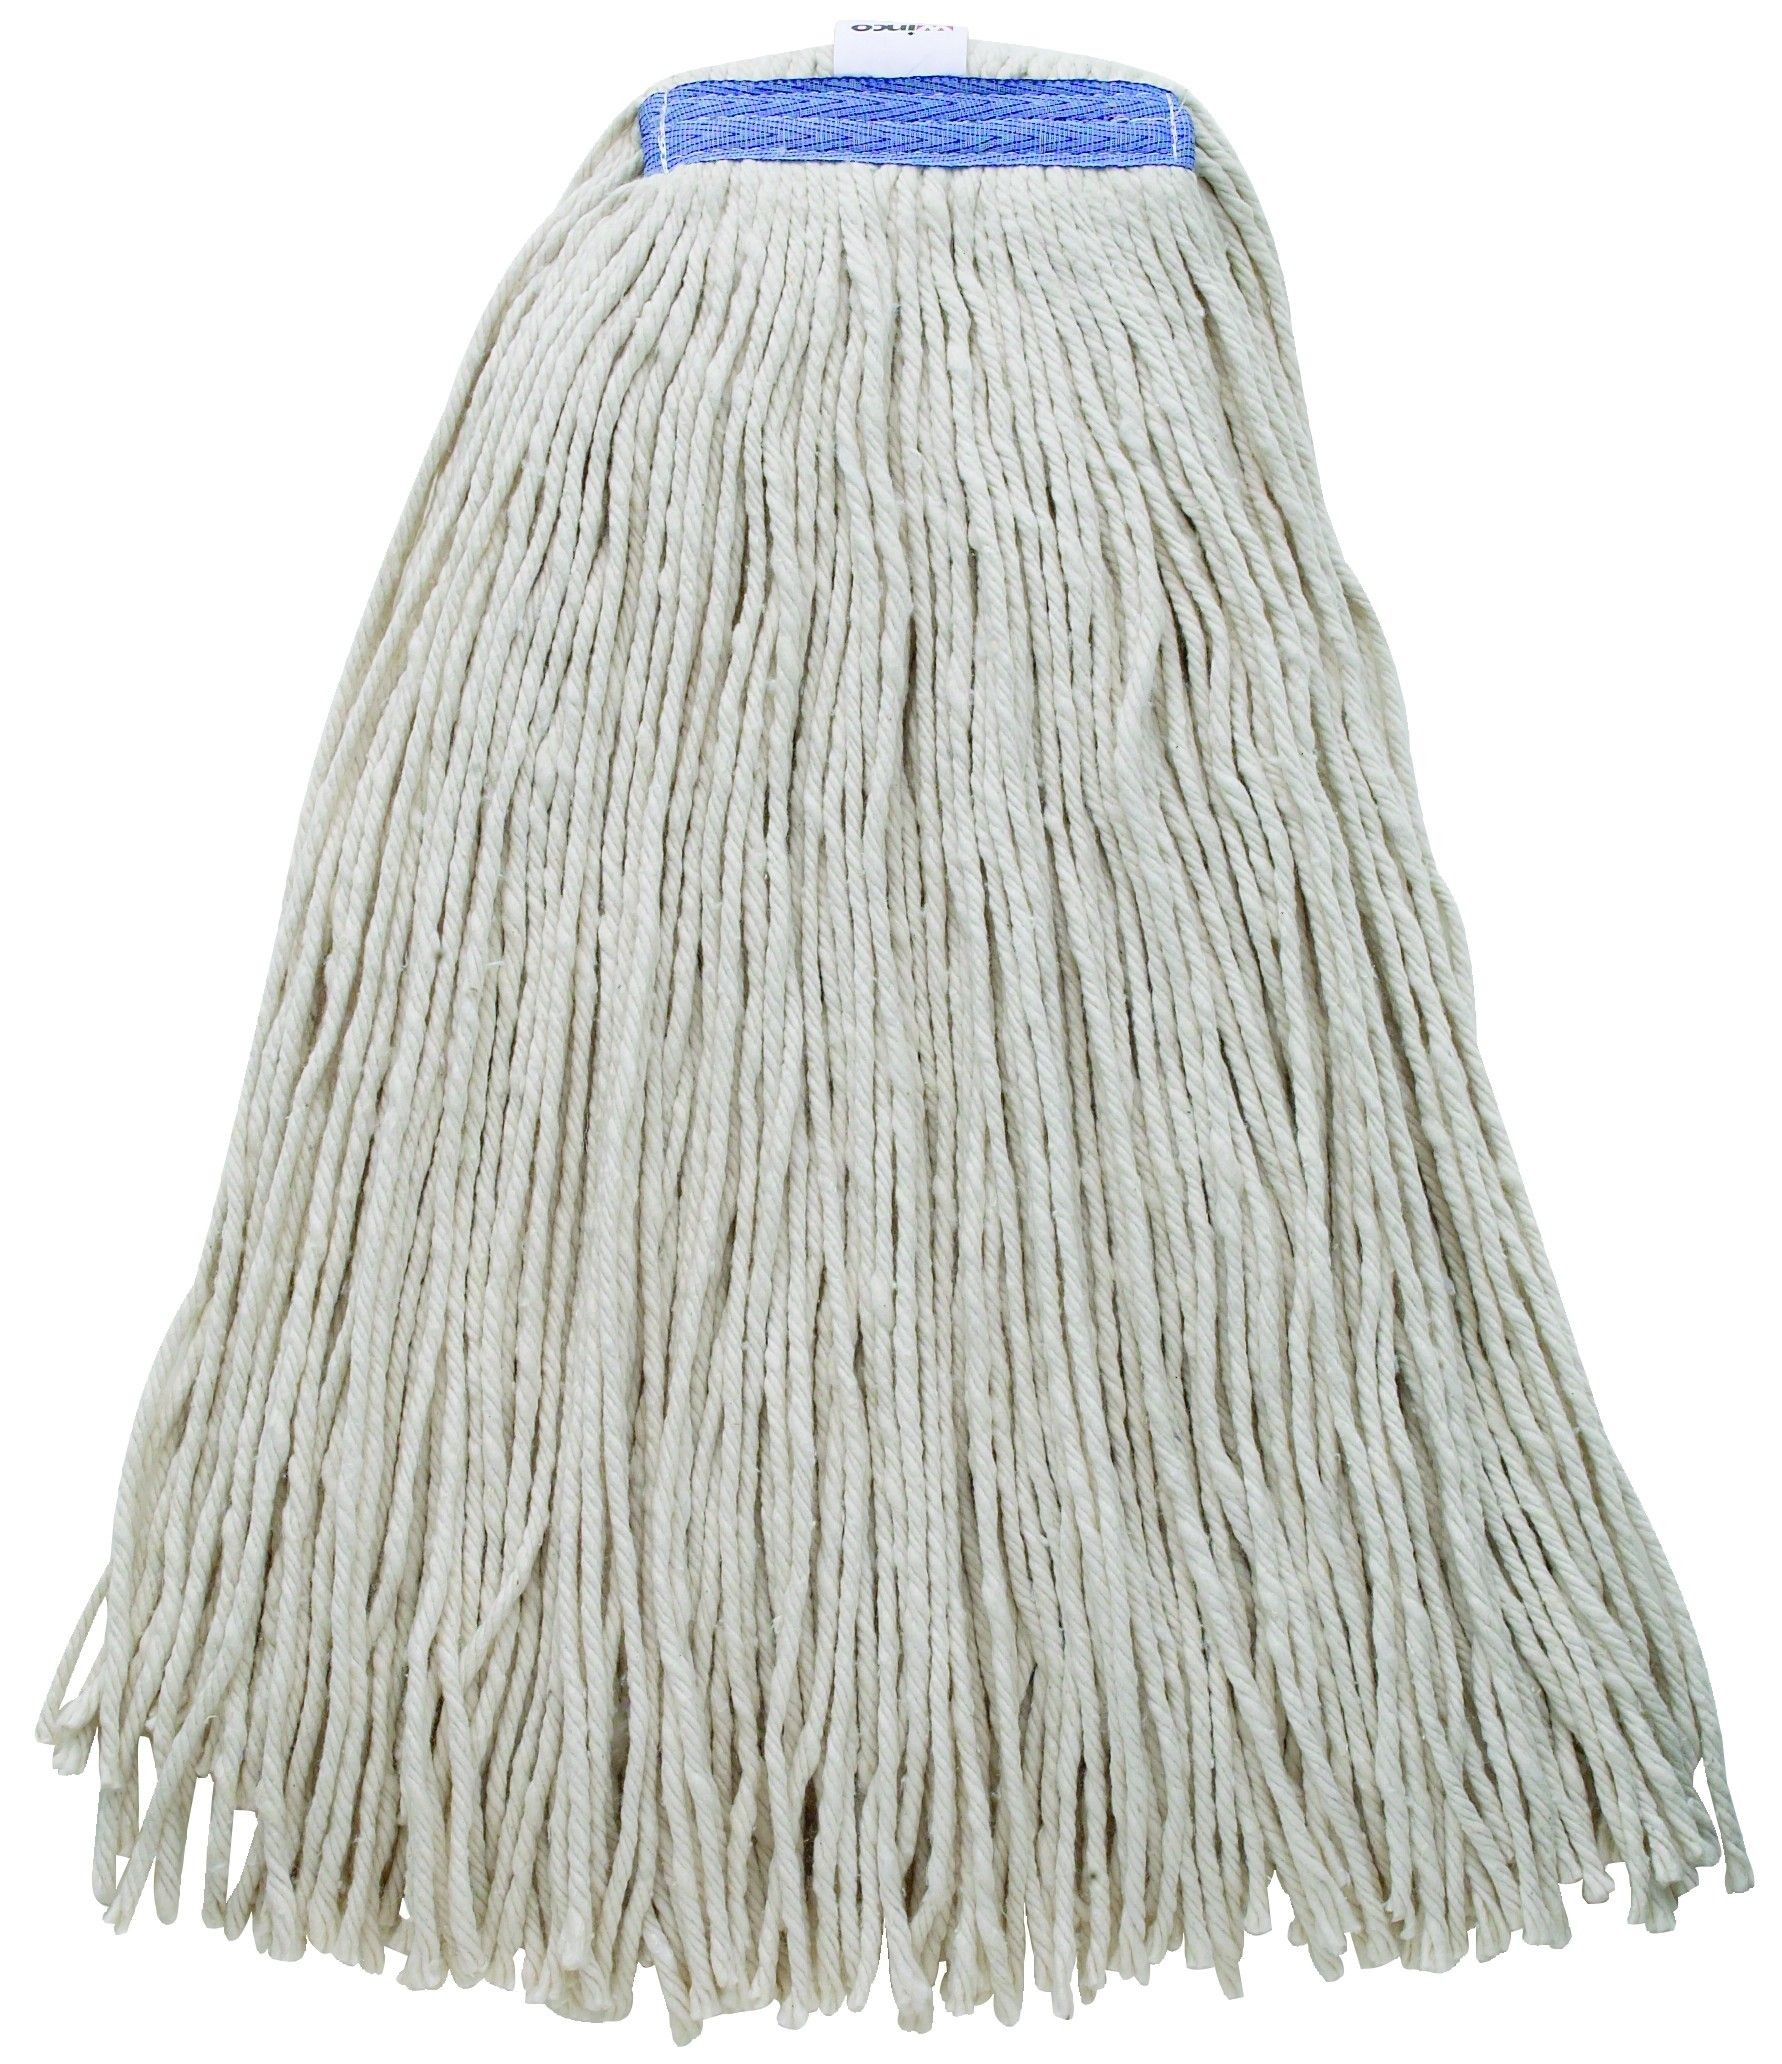 Winco MOPH-32WC Premium White Yarn Mop Head, Cut Head 800g, 32 oz.